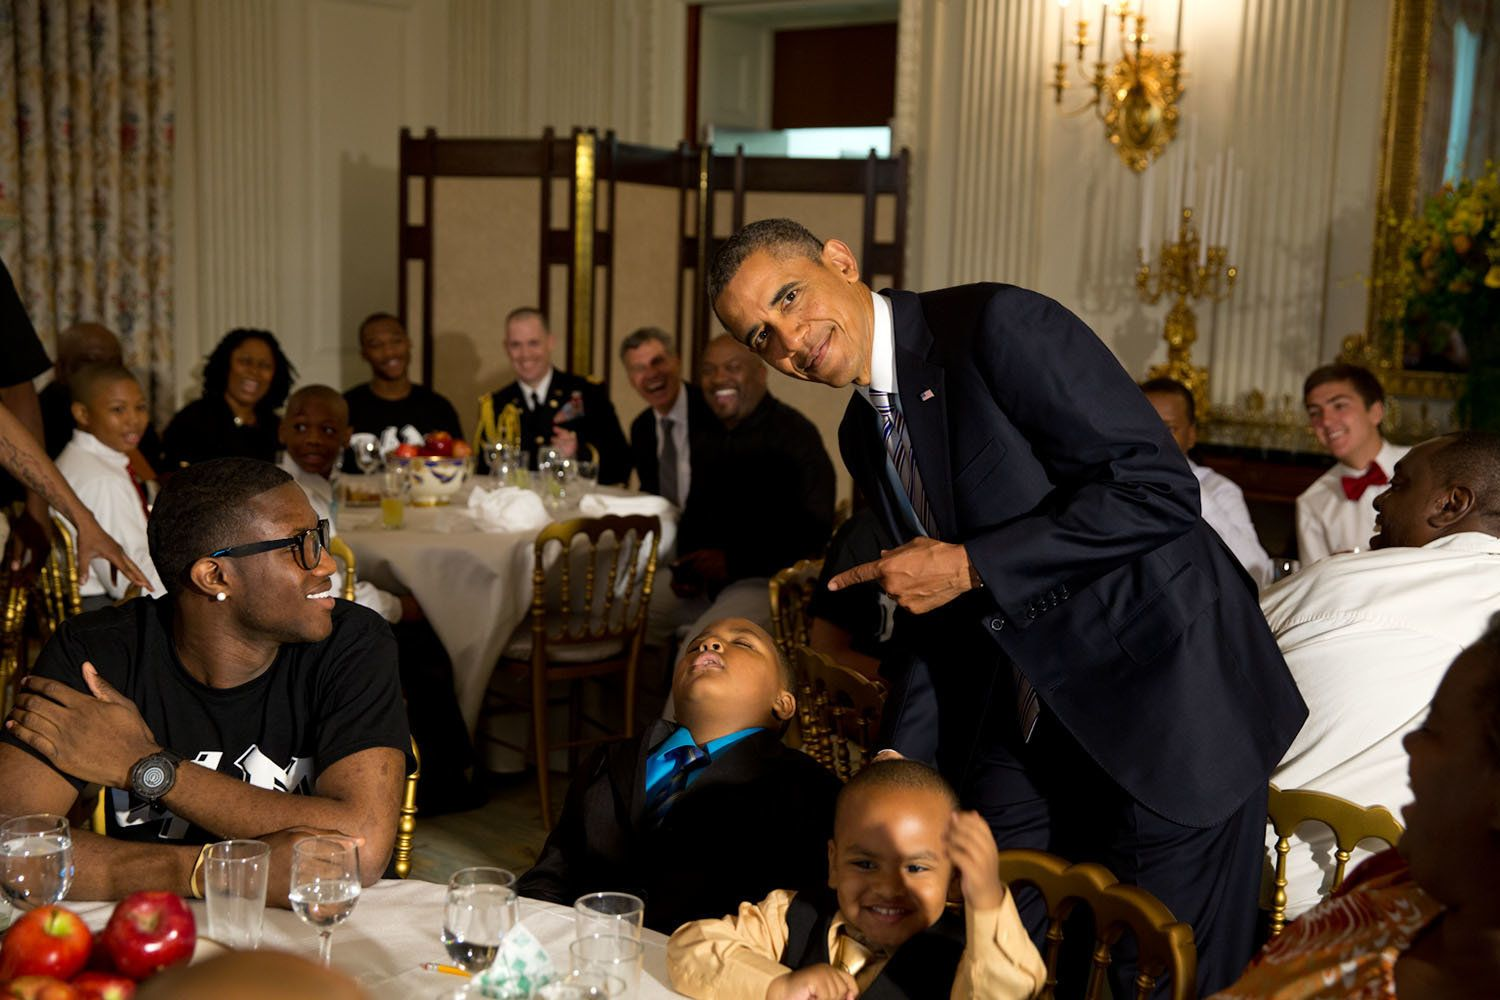 "June 14, 2013 ""The President called me over to pose for a photo with a young boy who had fallen asleep during the Father's Day ice cream social in the State Dining Room of the White House."" (Official White House Photo by Pete Souza)"